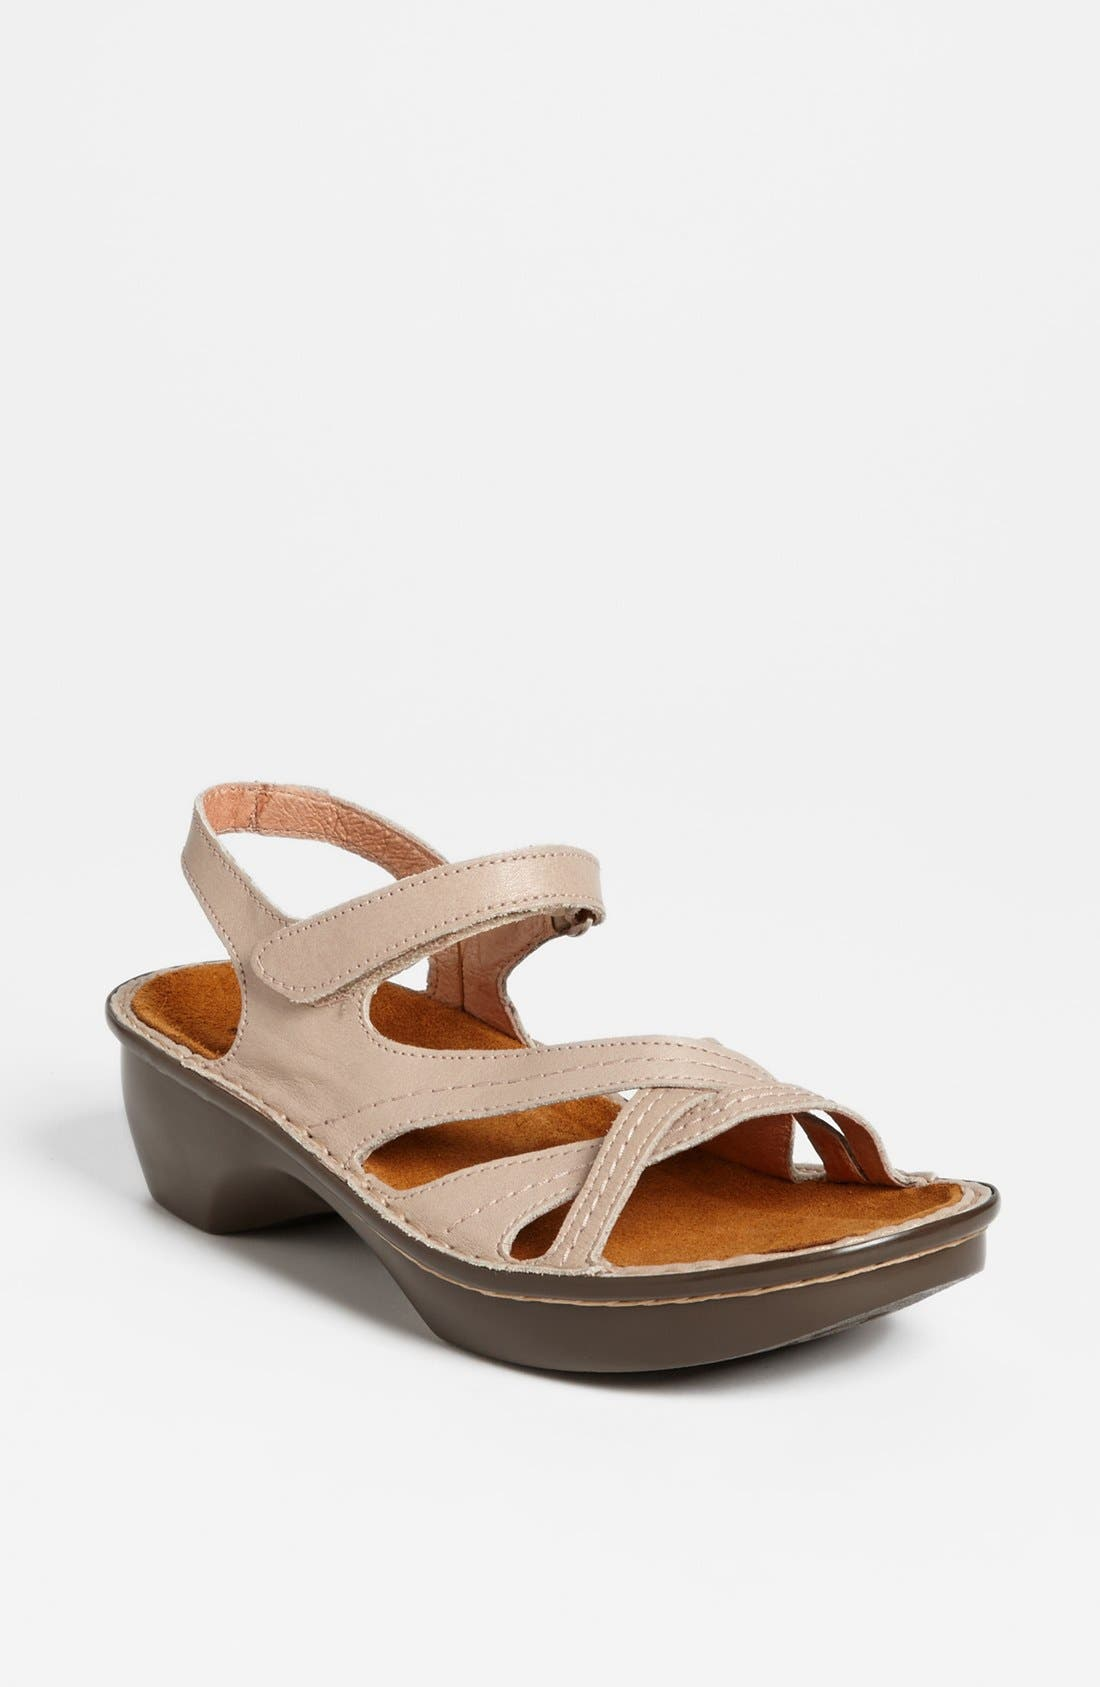 Naot 'Paris' Sandal